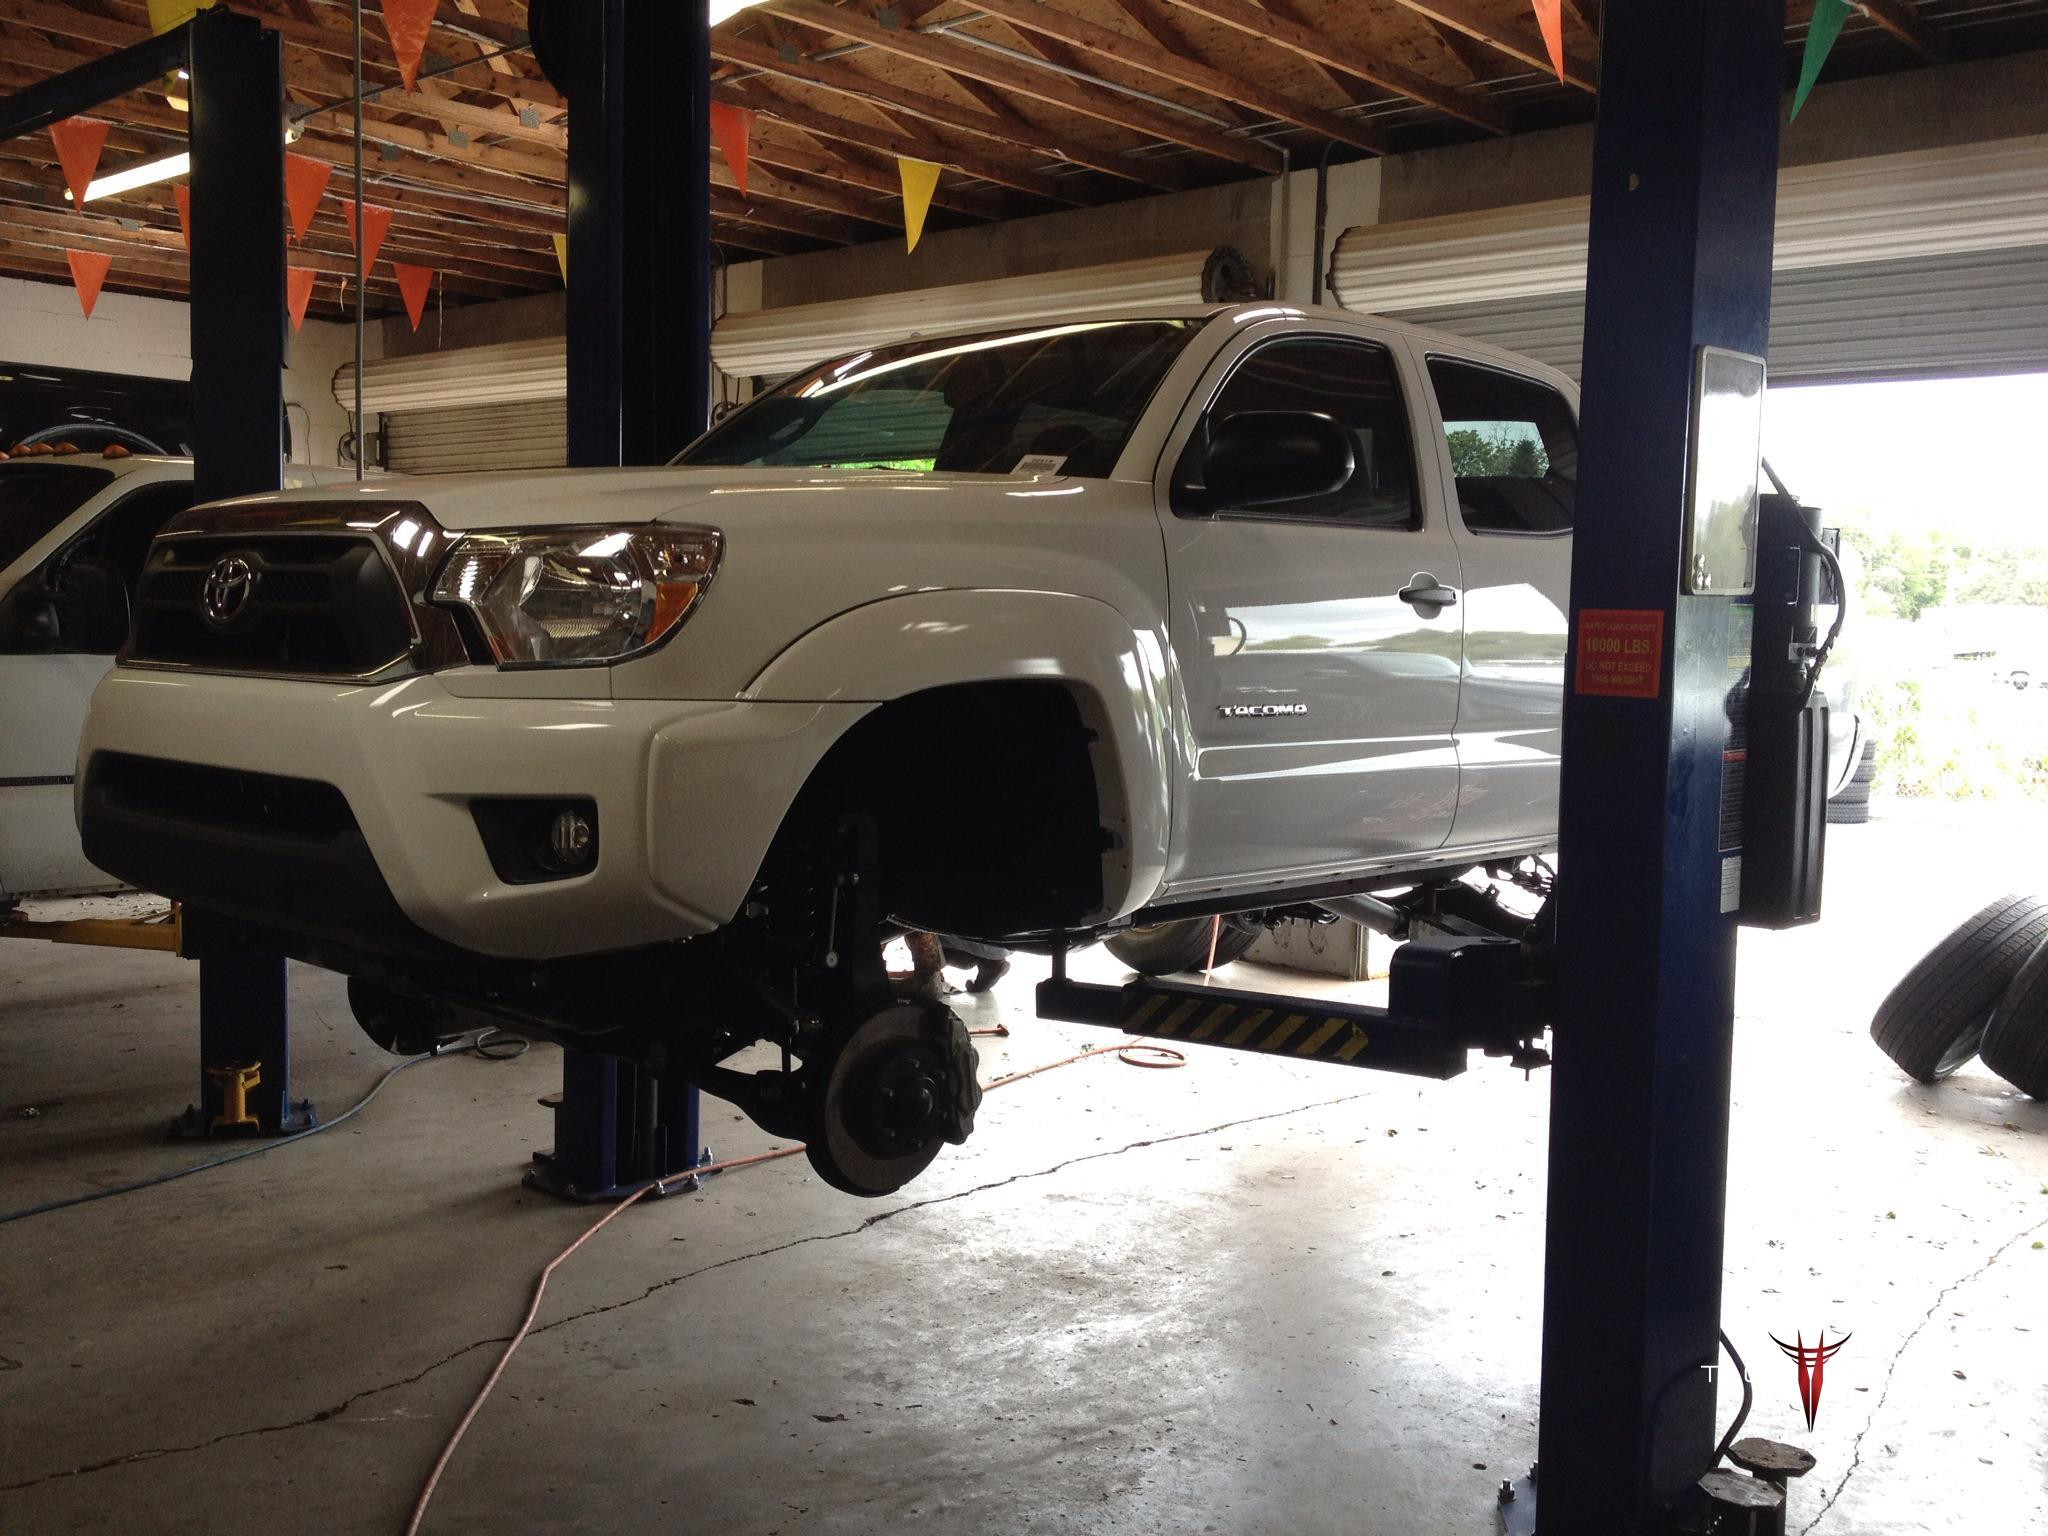 Bds Suspension Lift Kit Before And After Pictures Tires Wheels Specs 2004 Toyota Tundra Double Cab Lifted Camry 10